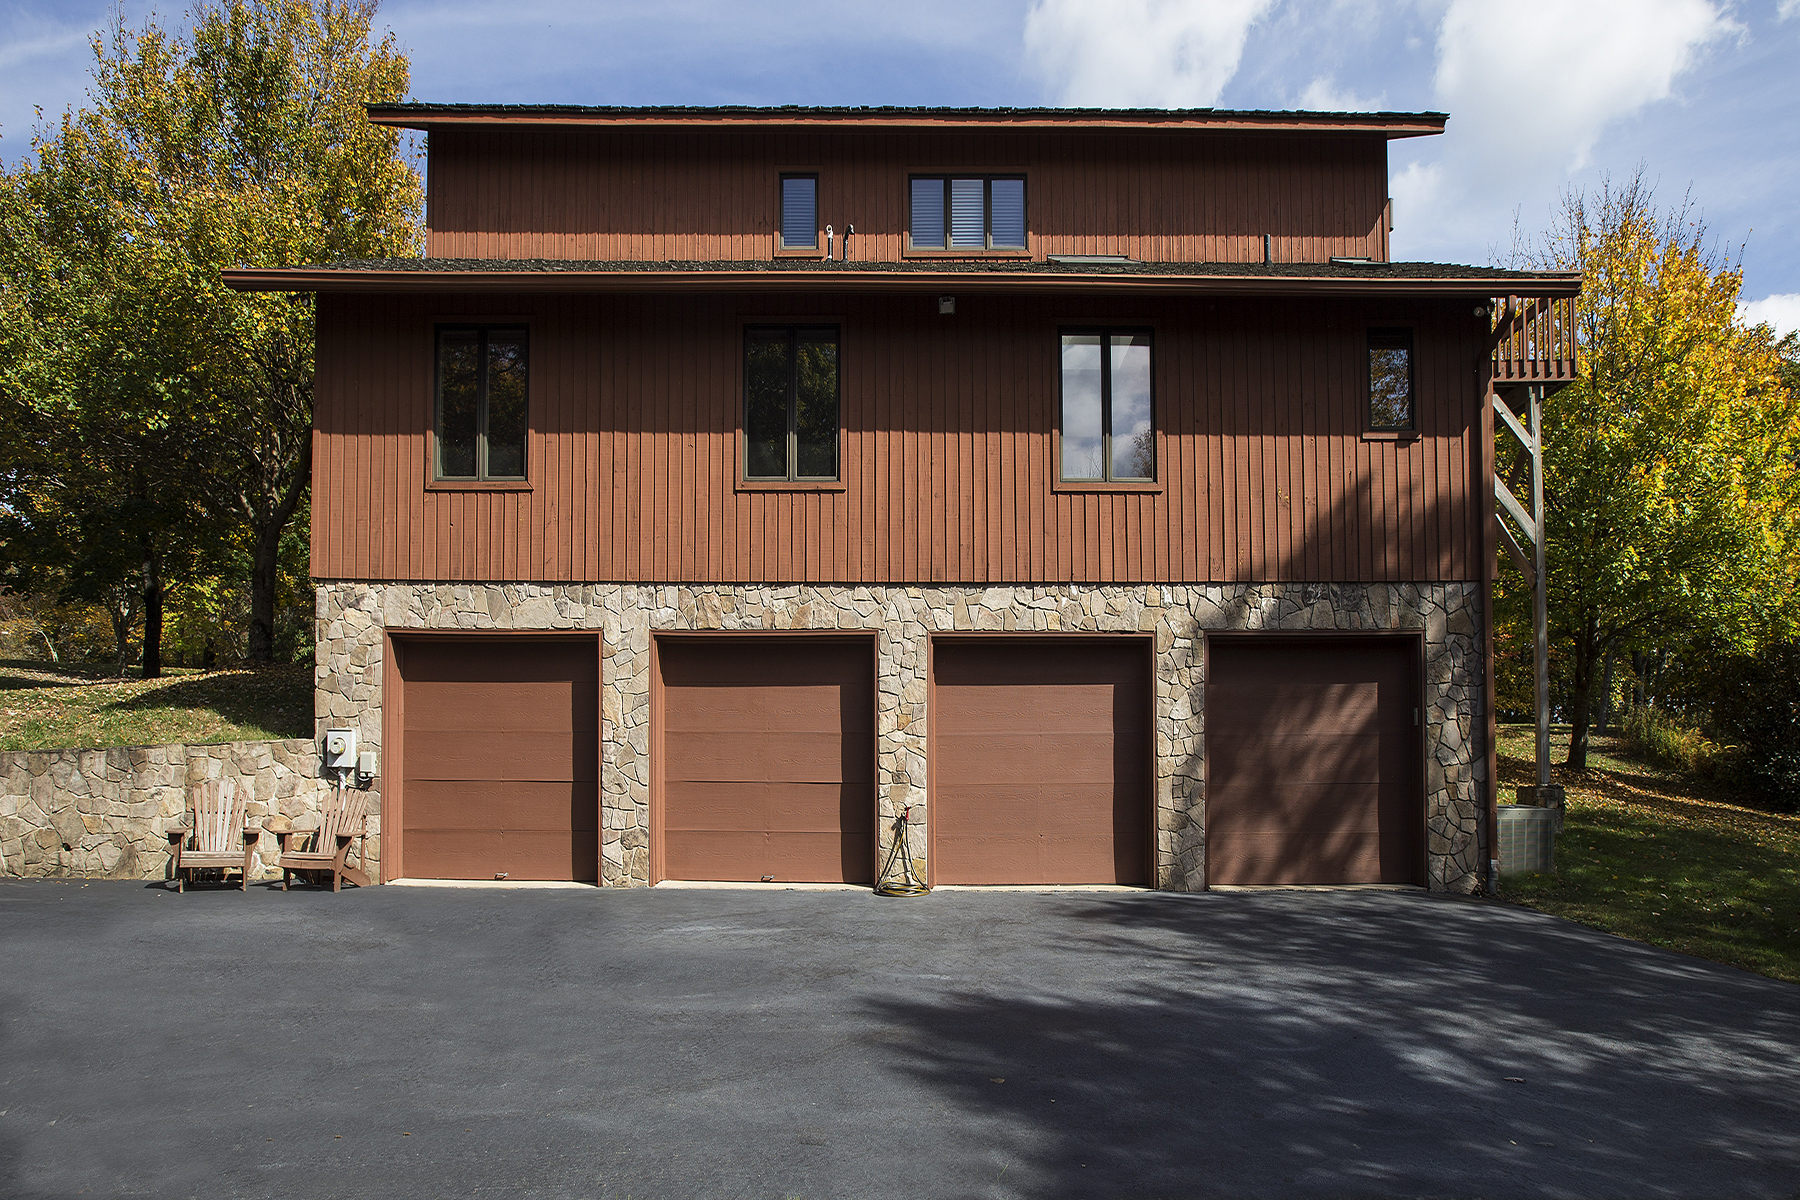 Single Family Home for Sale at BLOWING ROCK 622 Sampson Blowing Rock, North Carolina, 28605 United States